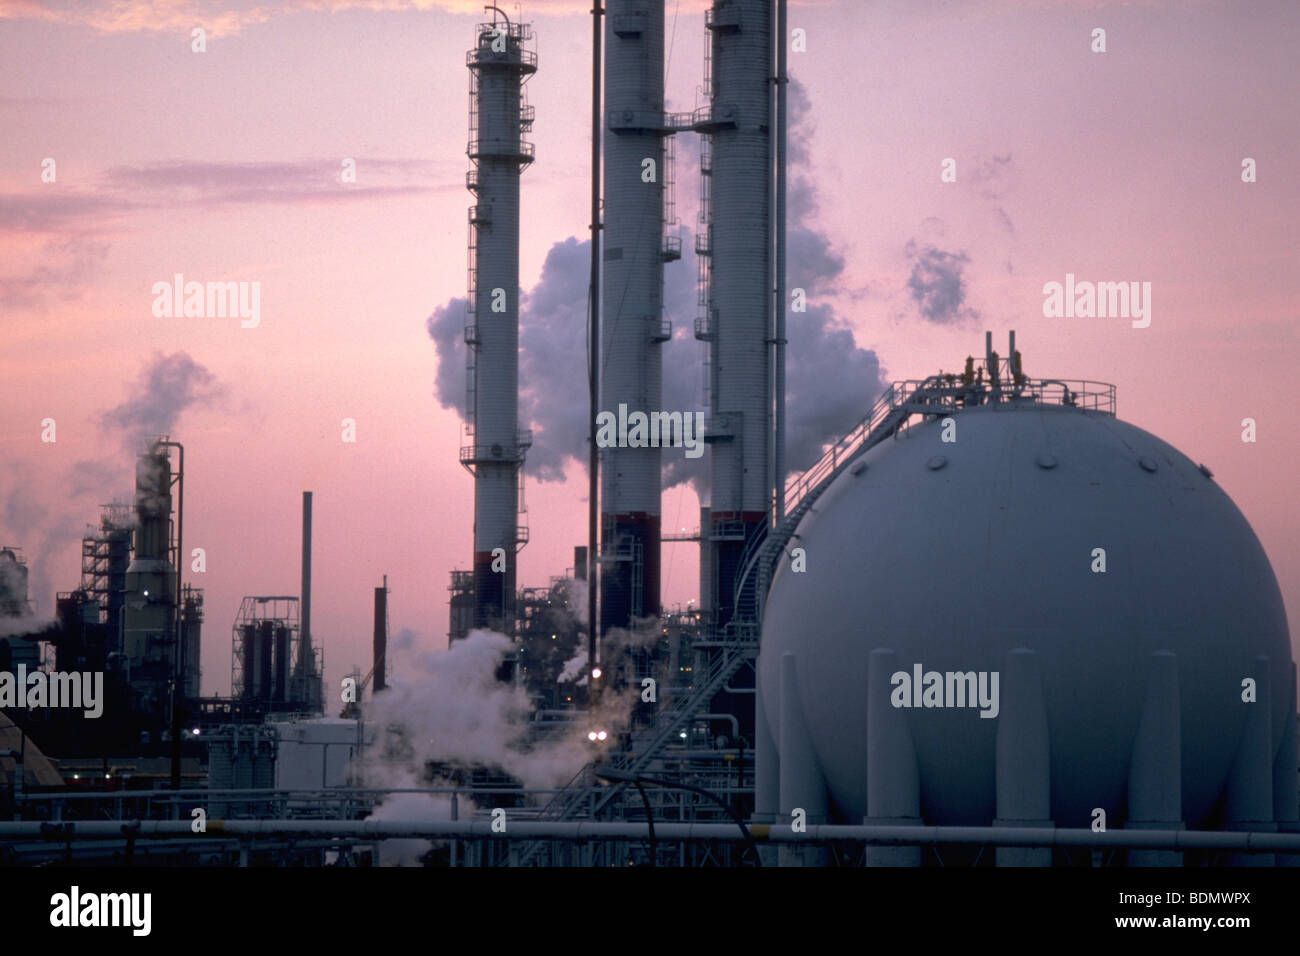 First oil refinery in United States - Stock Image